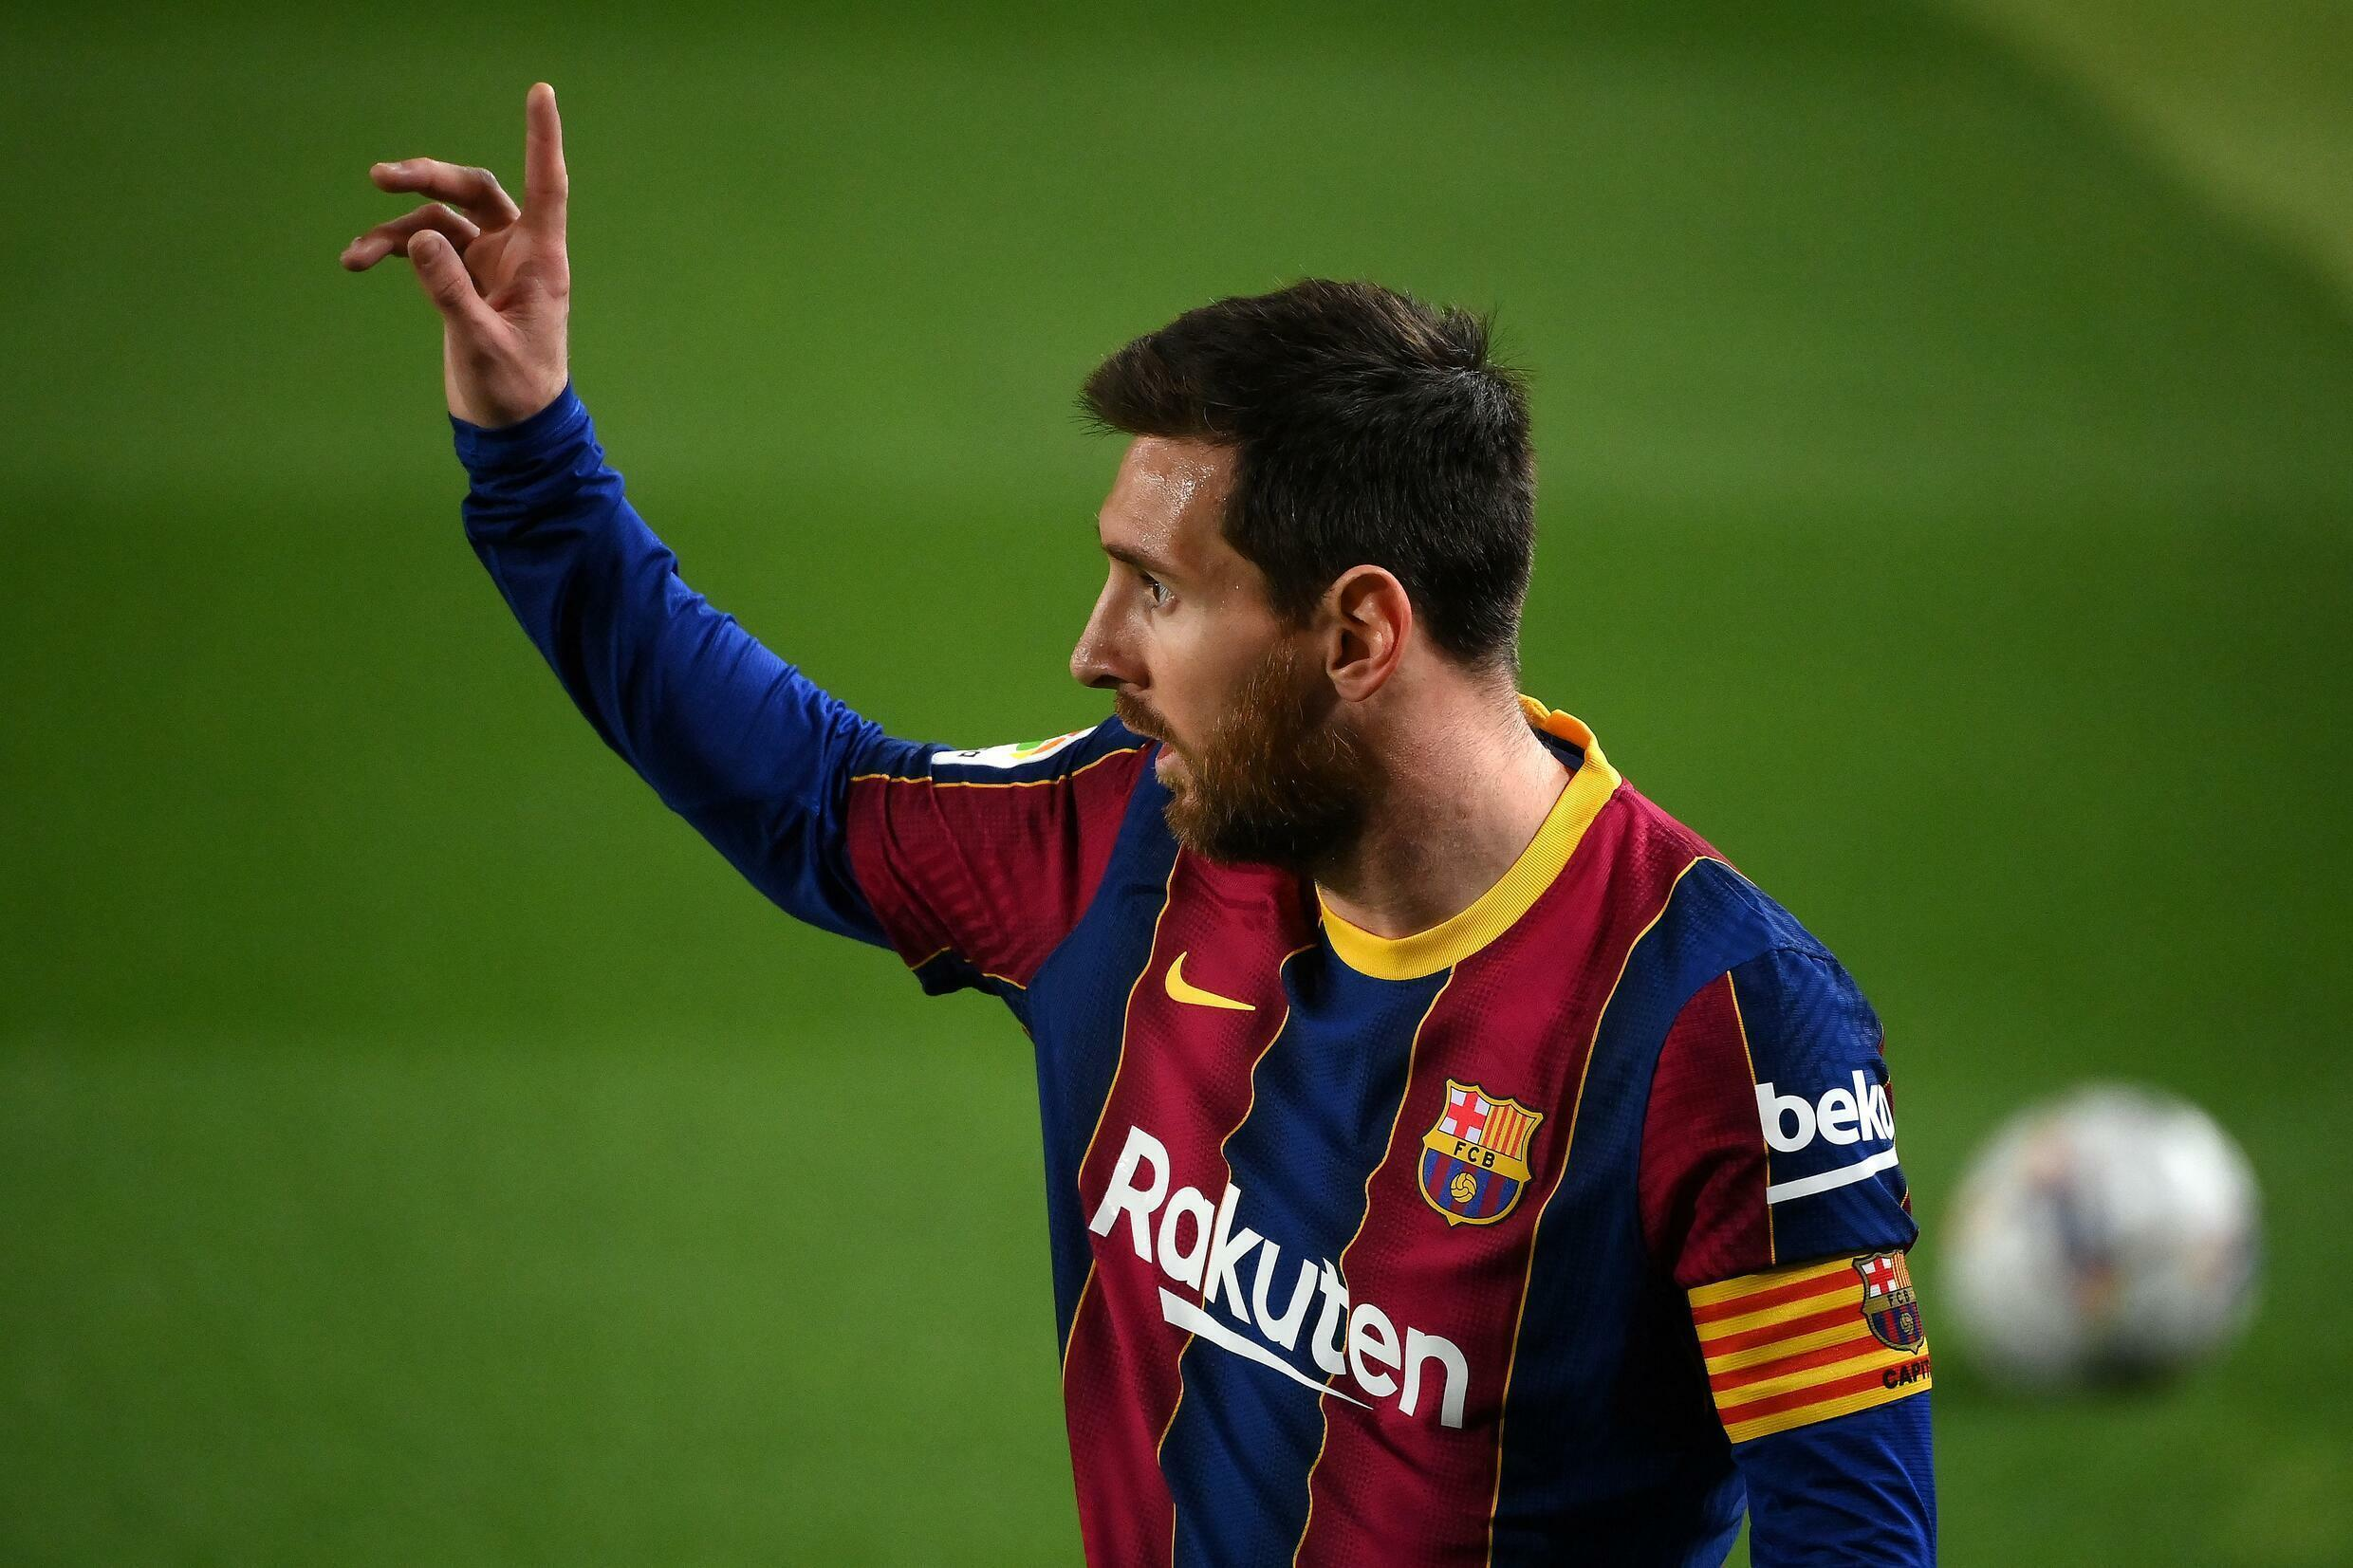 Lionel Messi is leaving Barcelona, club president Joan Laporta said in a press conference on Friday.